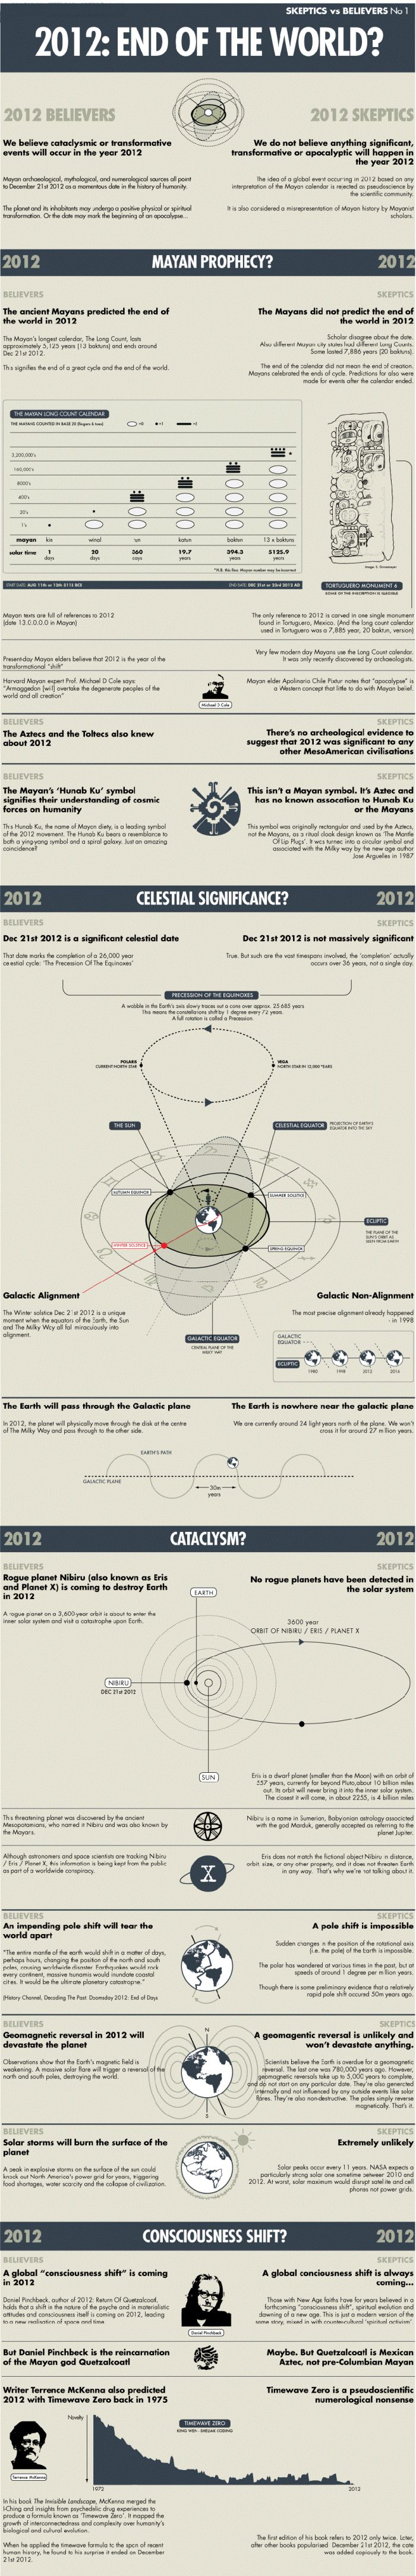 2012: The End Of The World? (infographic)